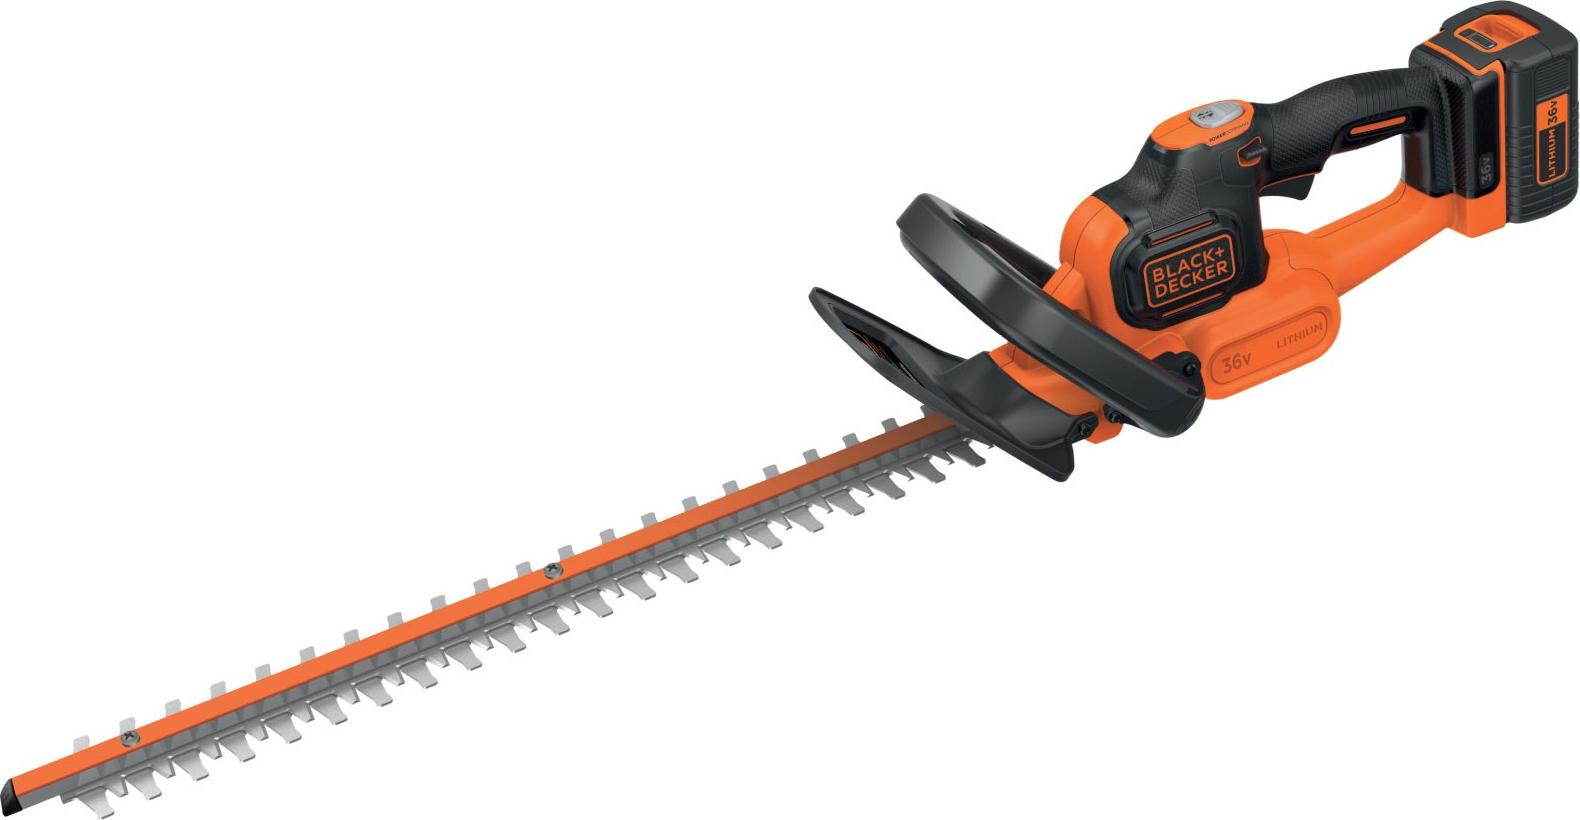 Кусторез Black & decker Gtc36552pc-qw